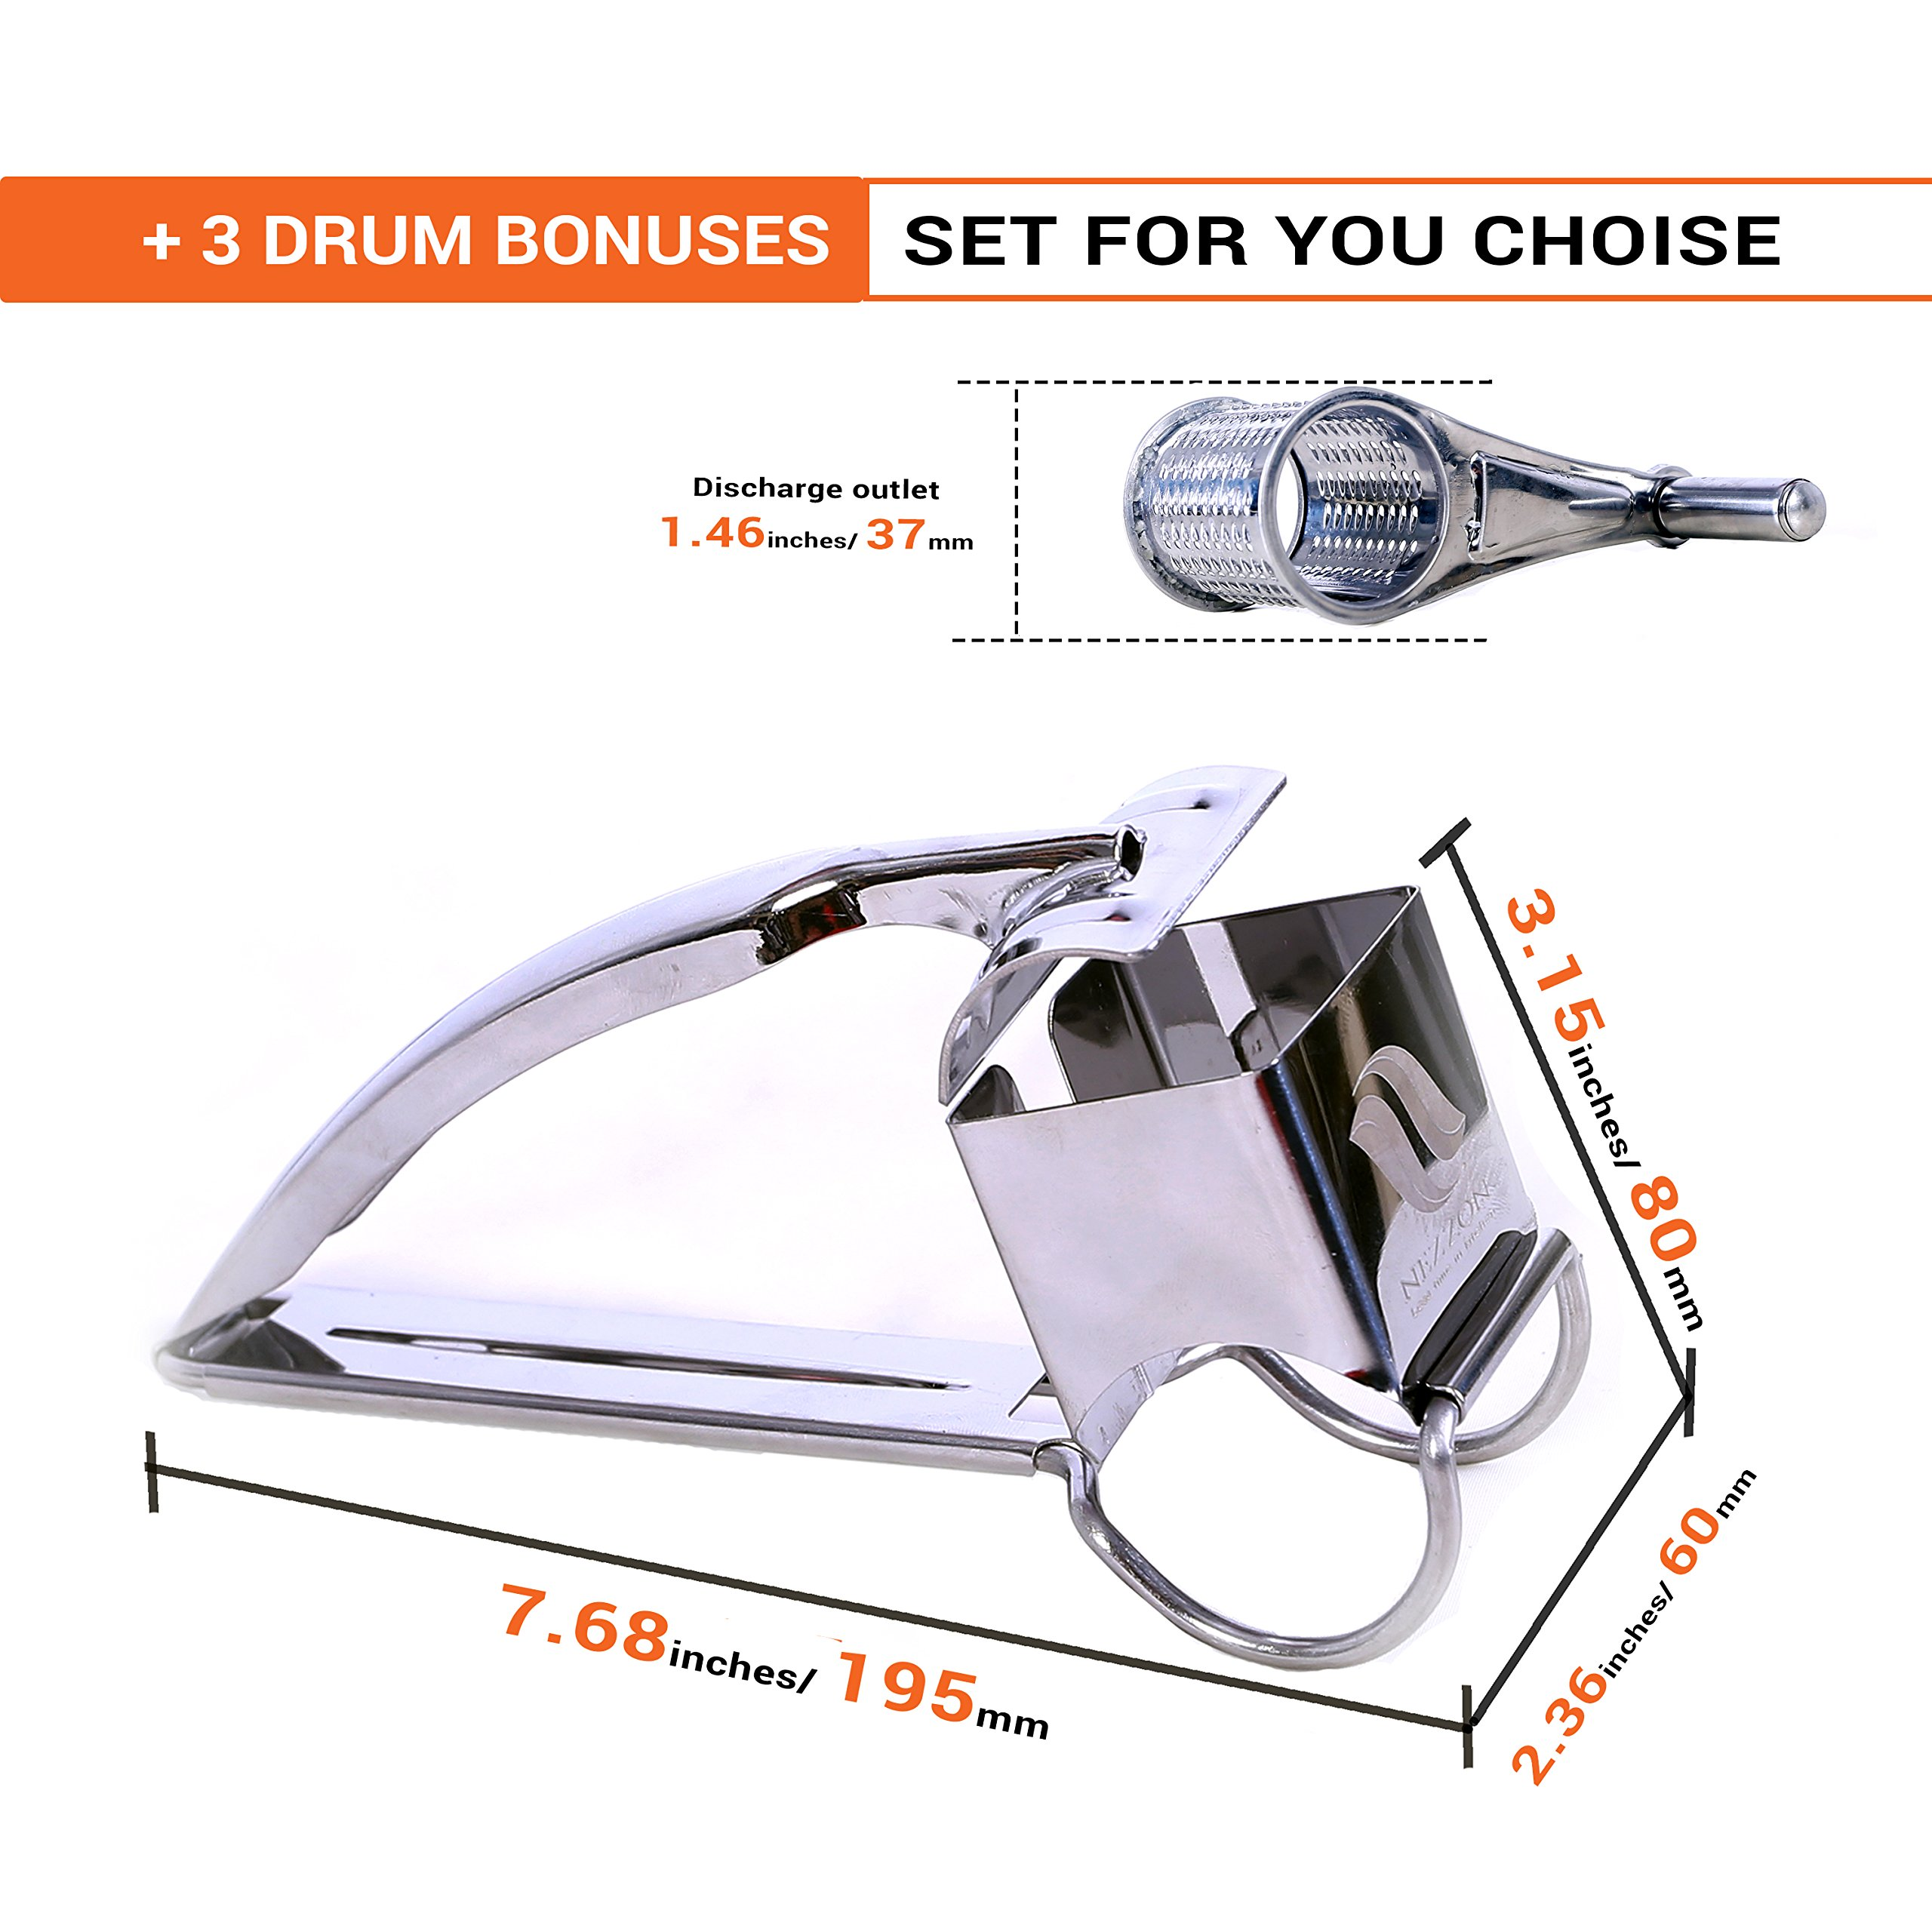 Rotary Cheese Grater Slicer Shredder with 3 Stainless Steel Drums for Soft and Hard Cheese, Chocolate, Nuts, Vegetables, Fruits. With a FREE 101 Tips and Techniques for Cooking Like a Chef E-book